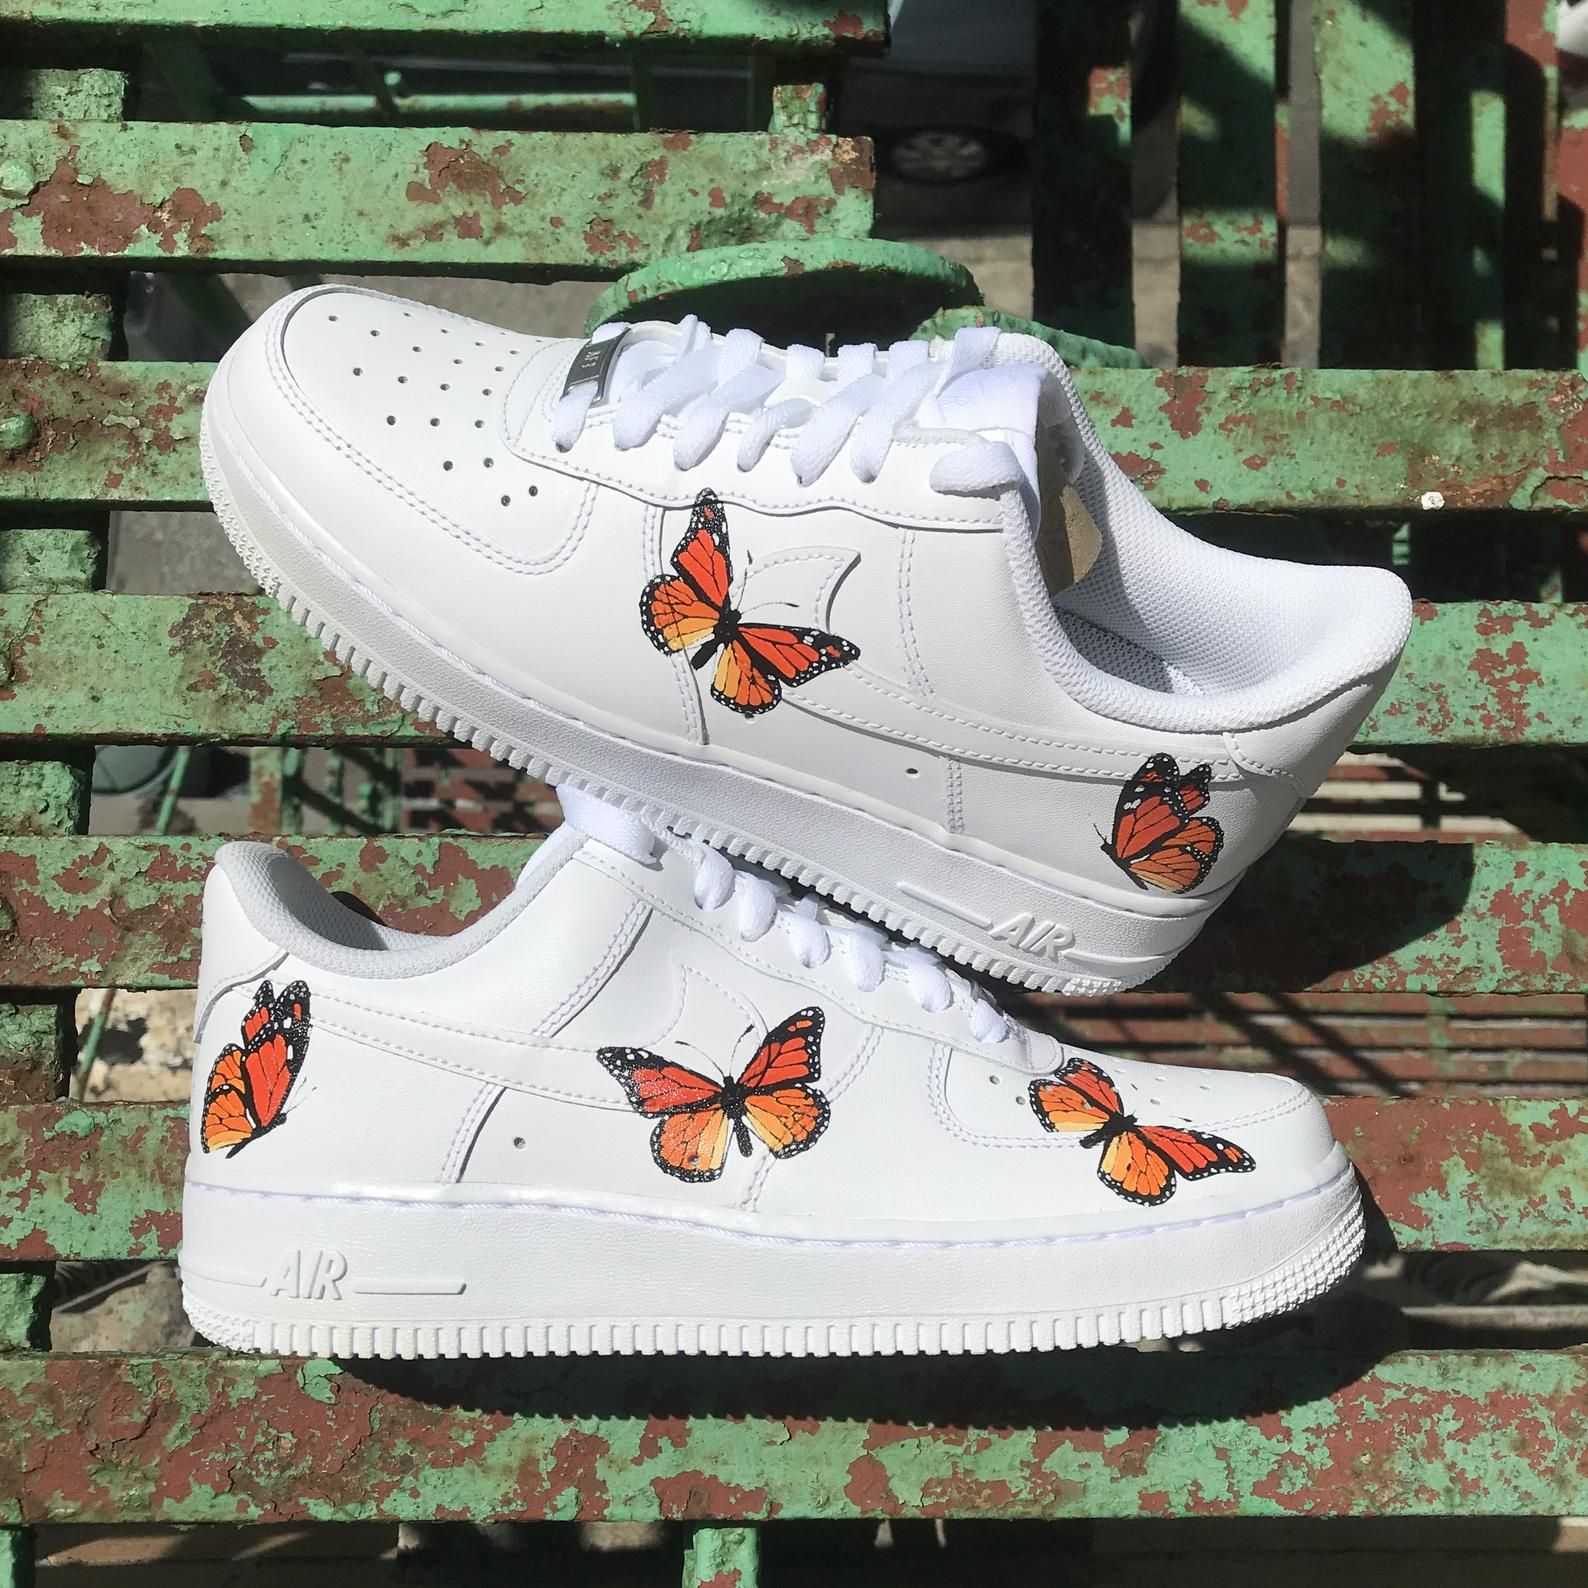 Custom Sneaker Nike Air Force 1 Gradient Butterfly Gucci